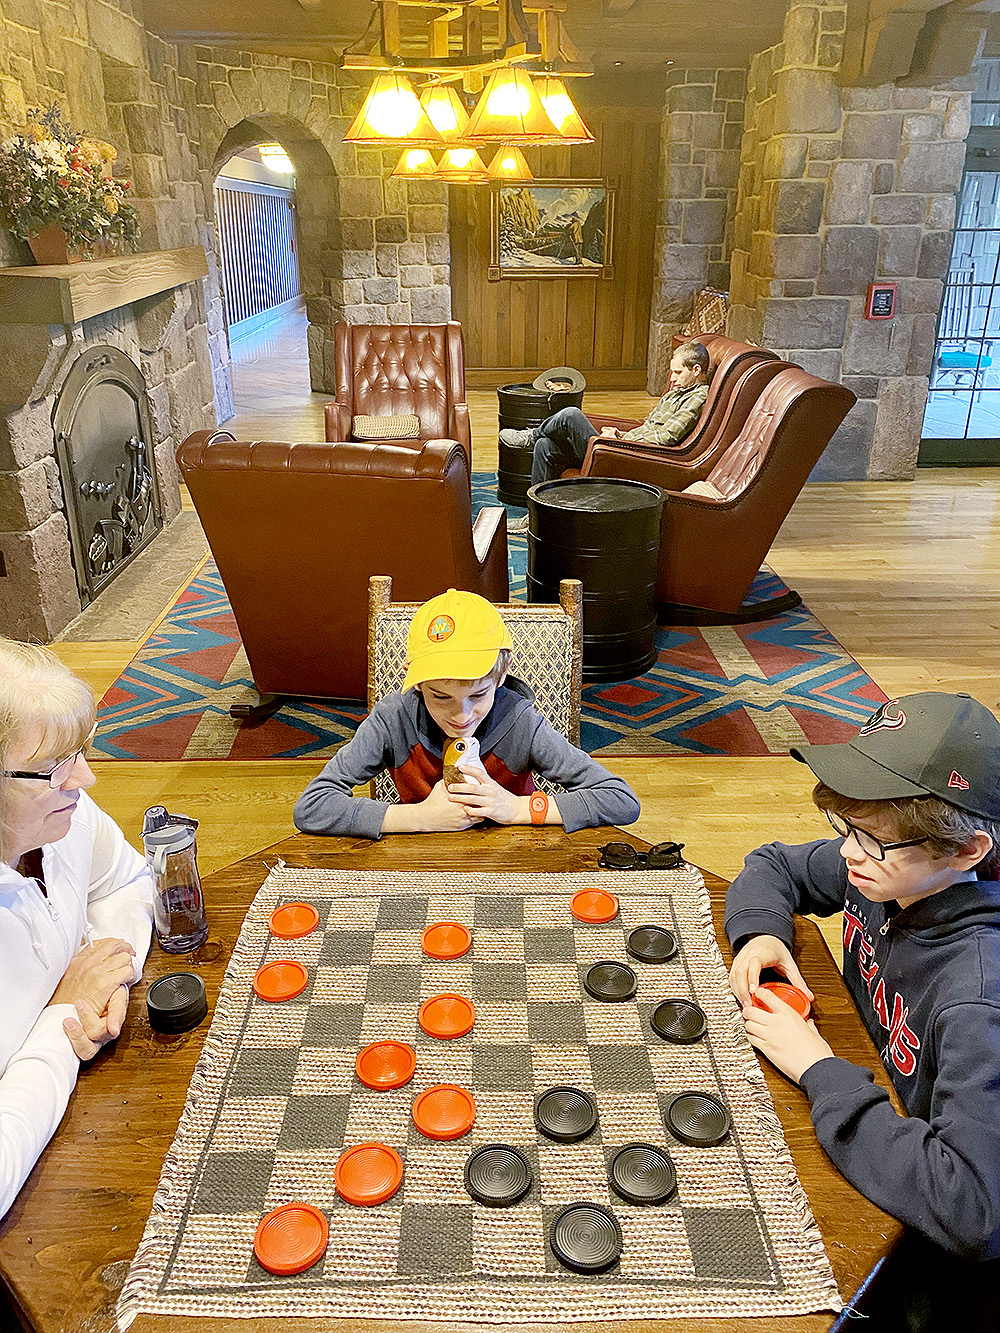 games in the Wilderness Lodge Carolwood Pacific Room